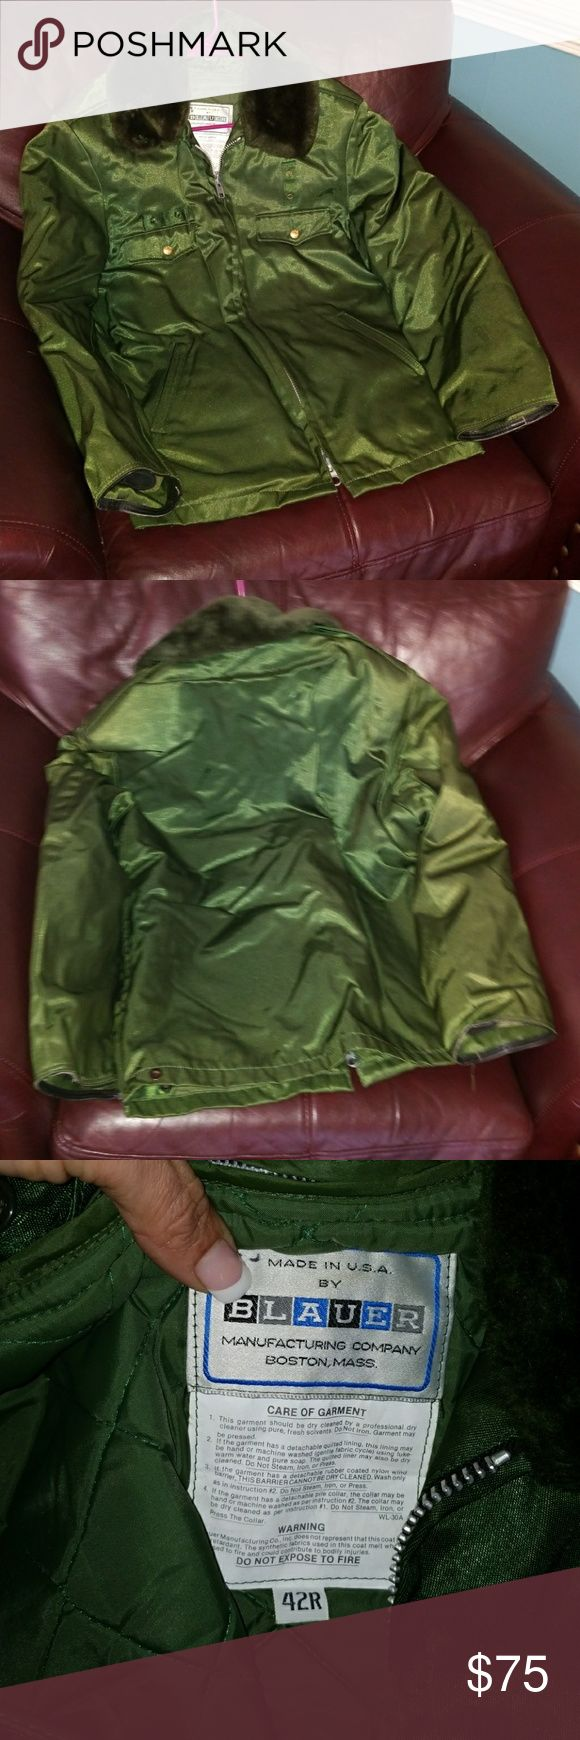 Blauer GORE green PARKA 3 SEASON coat 42R BLAUER GORE TEX OLIVE GREEN 3 SEASON PARKA COAT. Size 42R. Preowned but still in great condition with a lifetime left. Blauer Jackets & Coats